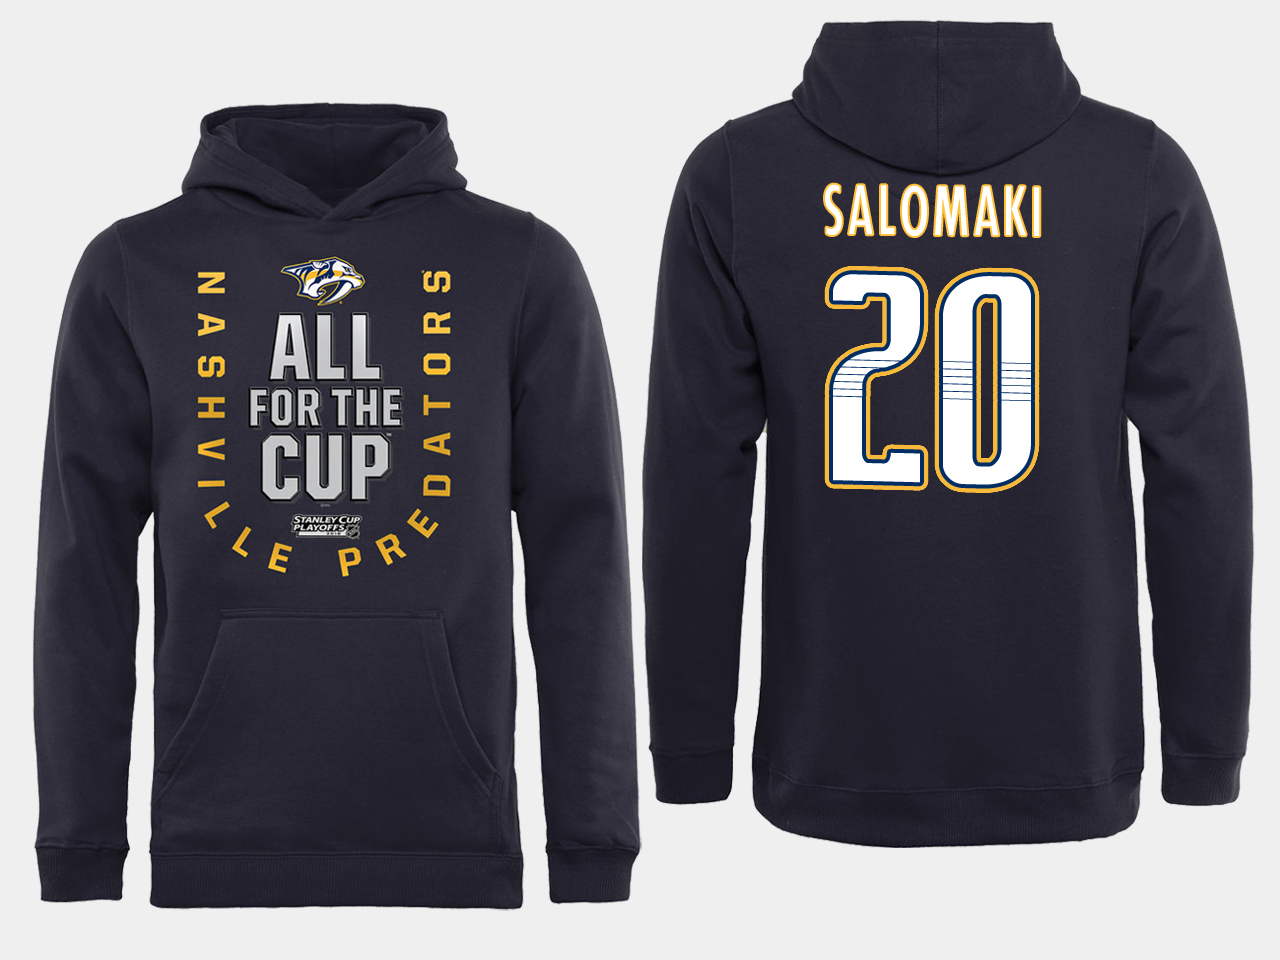 Men NHL Adidas Nashville Predators 20 Salomaki black ALL for the Cup hoodie